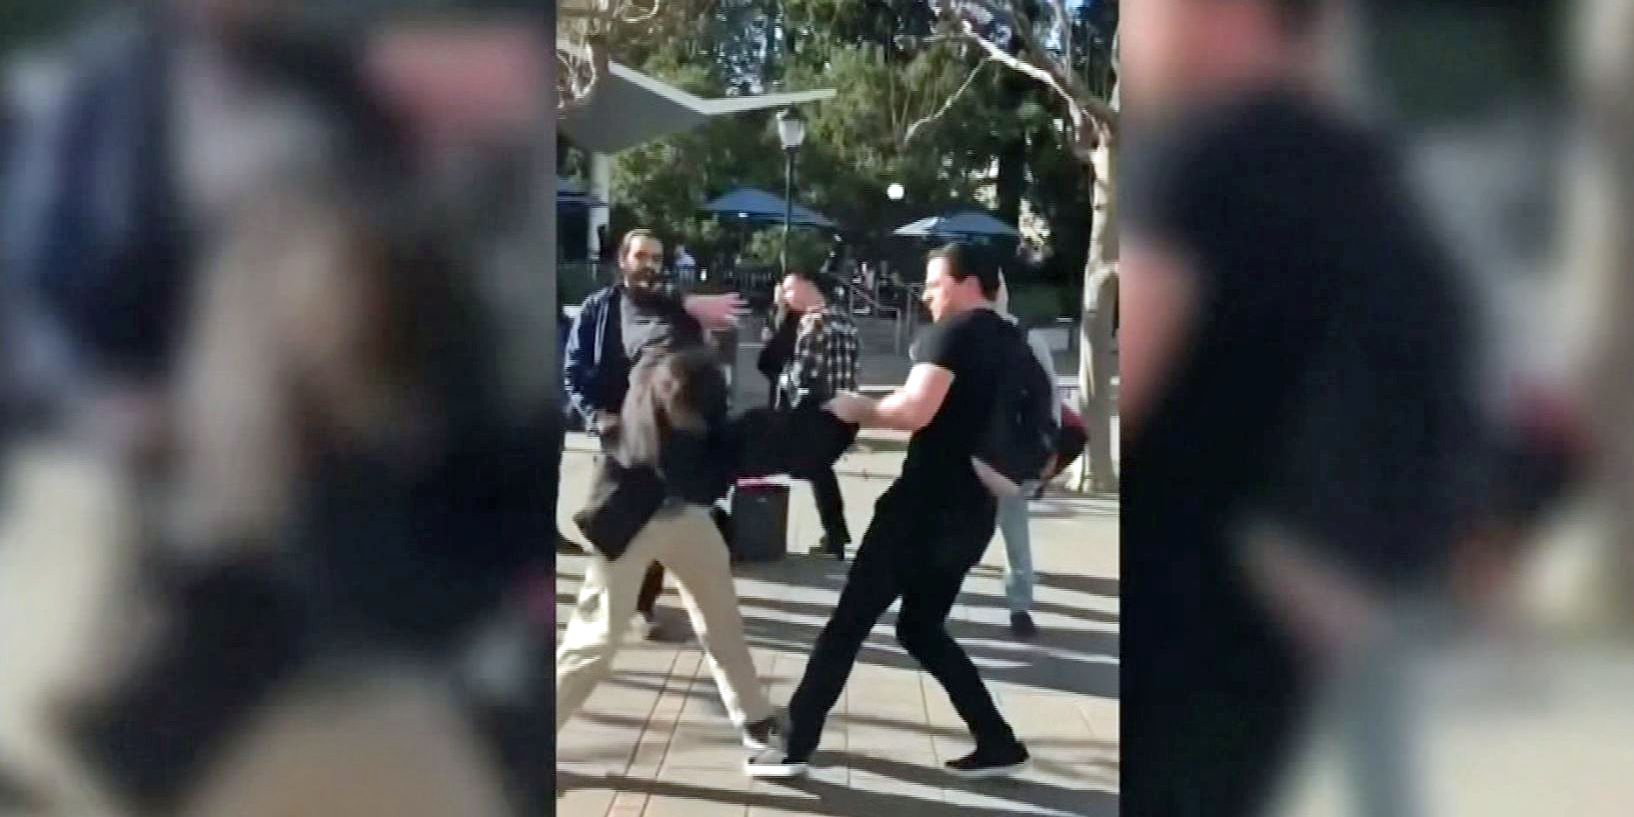 GRAPHIC: Conservative activist punched on UC Berkeley campus